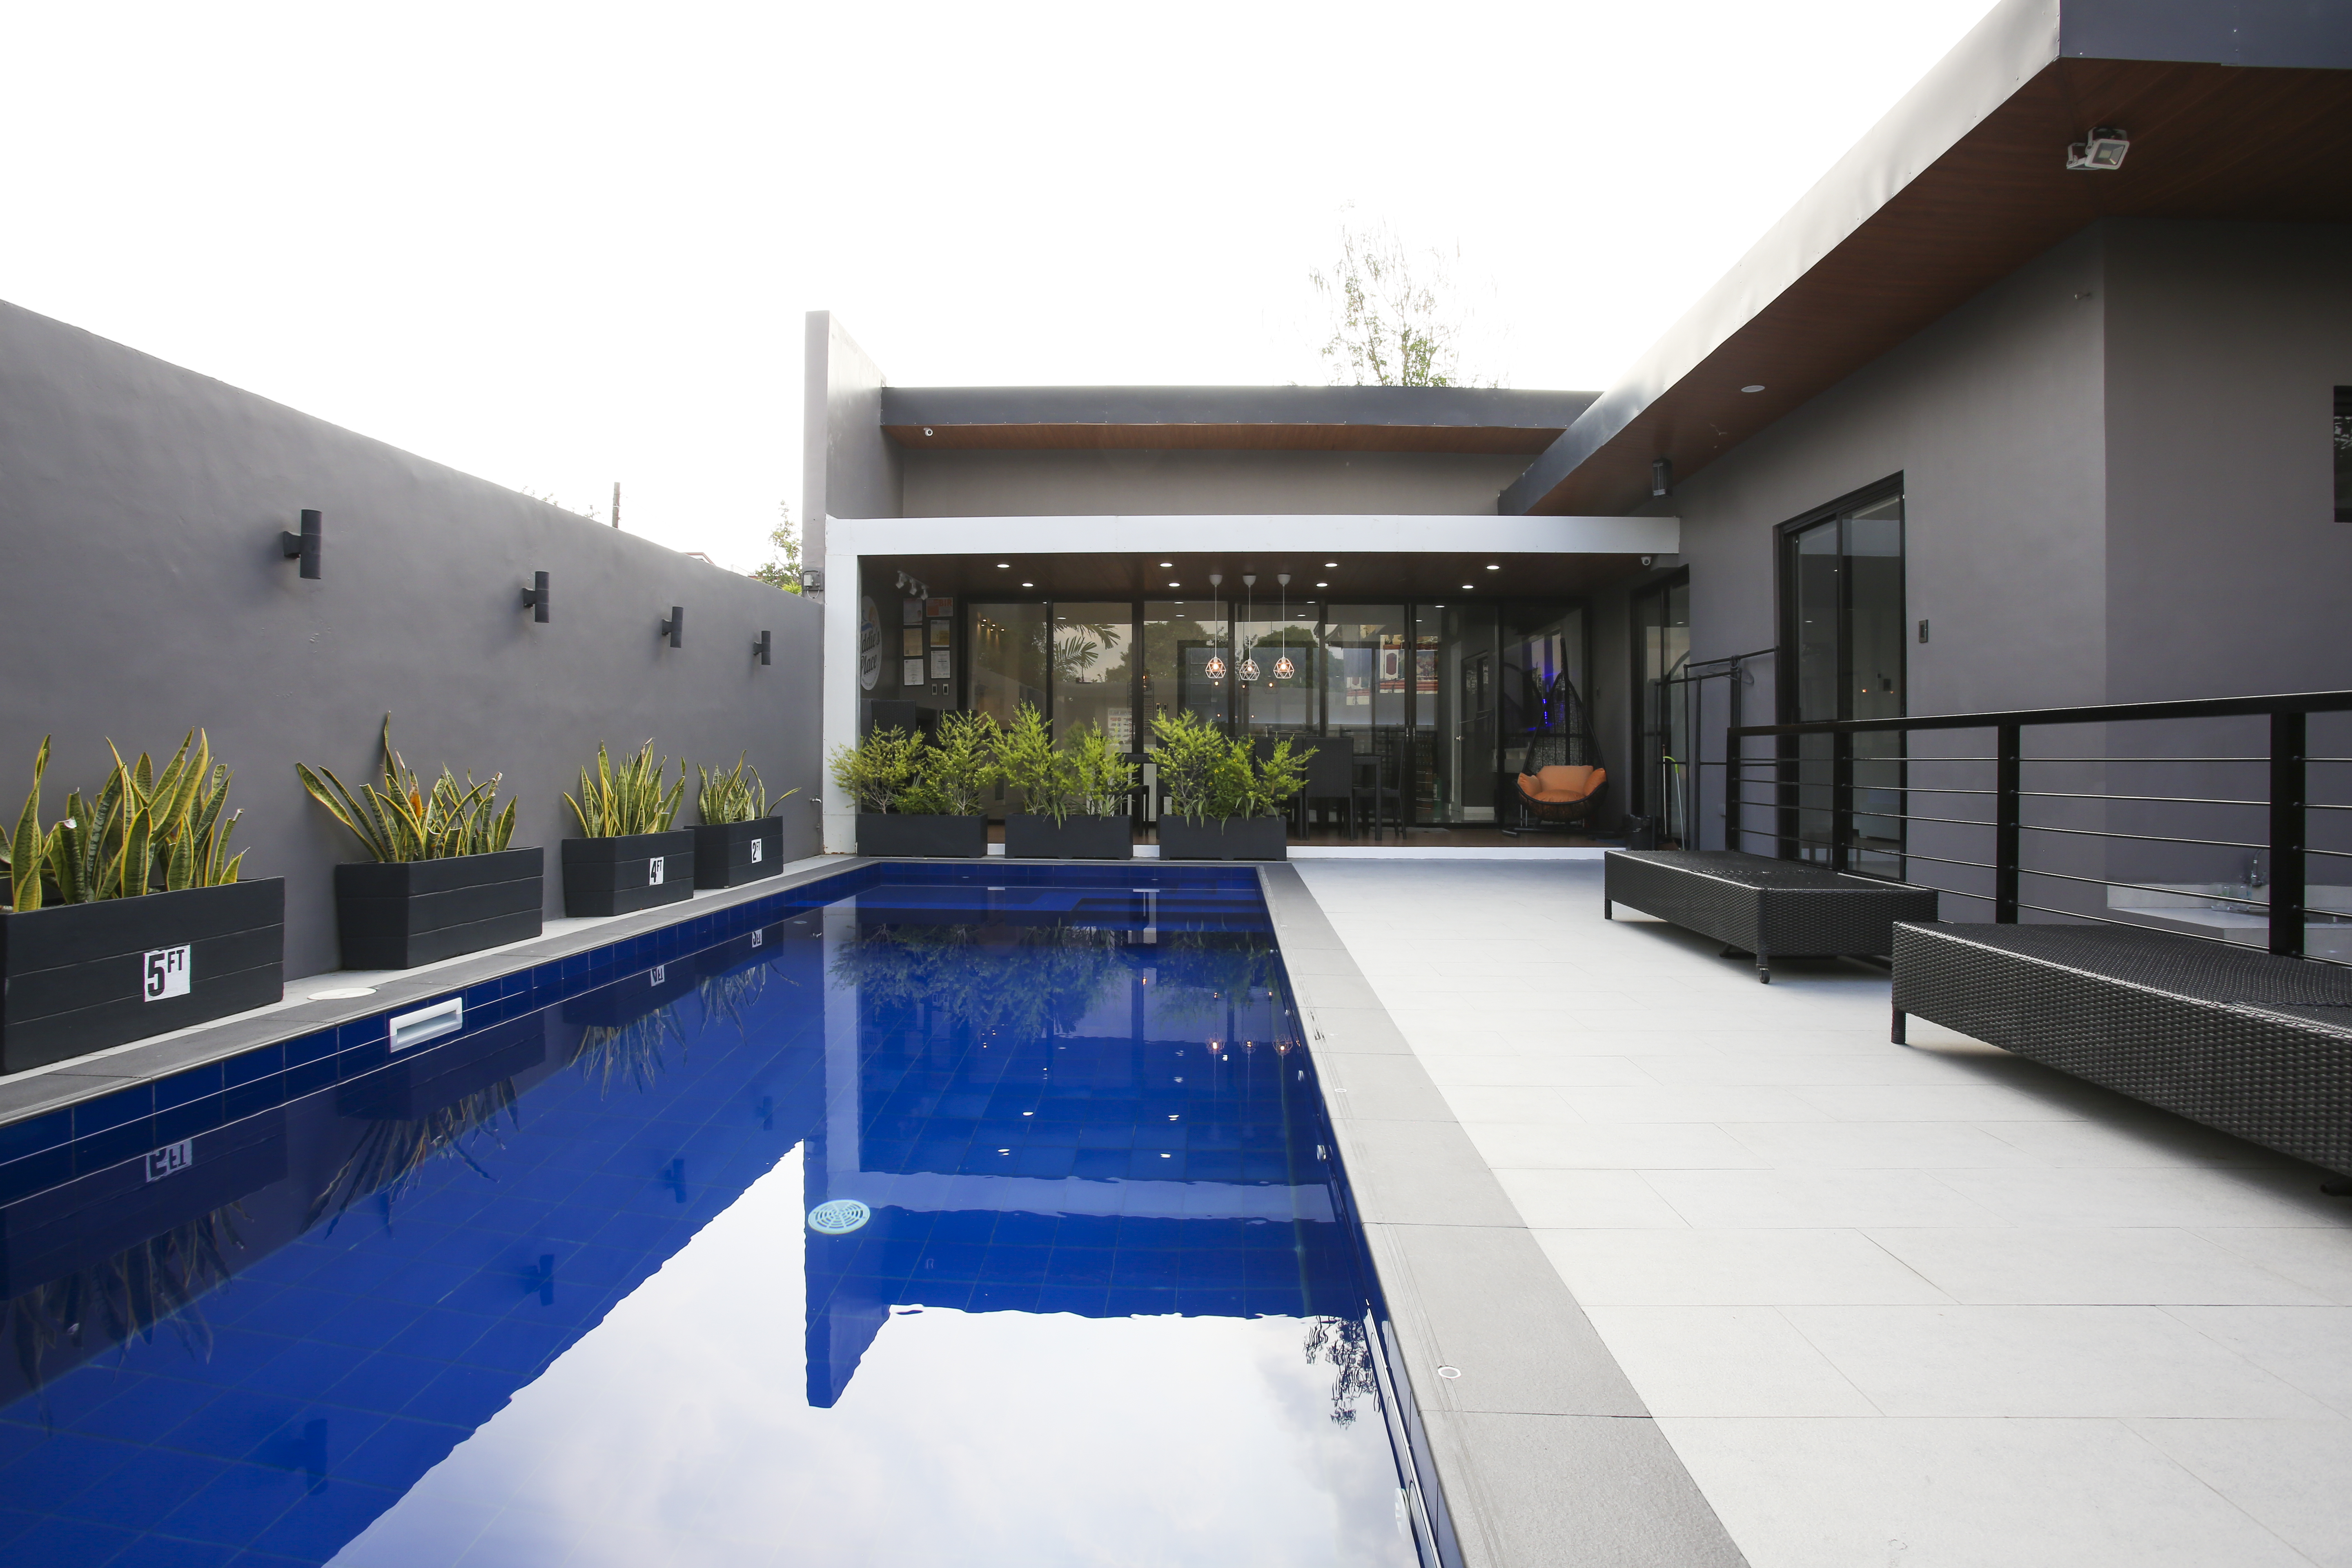 Addie S Place Private Pool Vacation House Villas For Rent In Muntinlupa Metro Manila Philippines